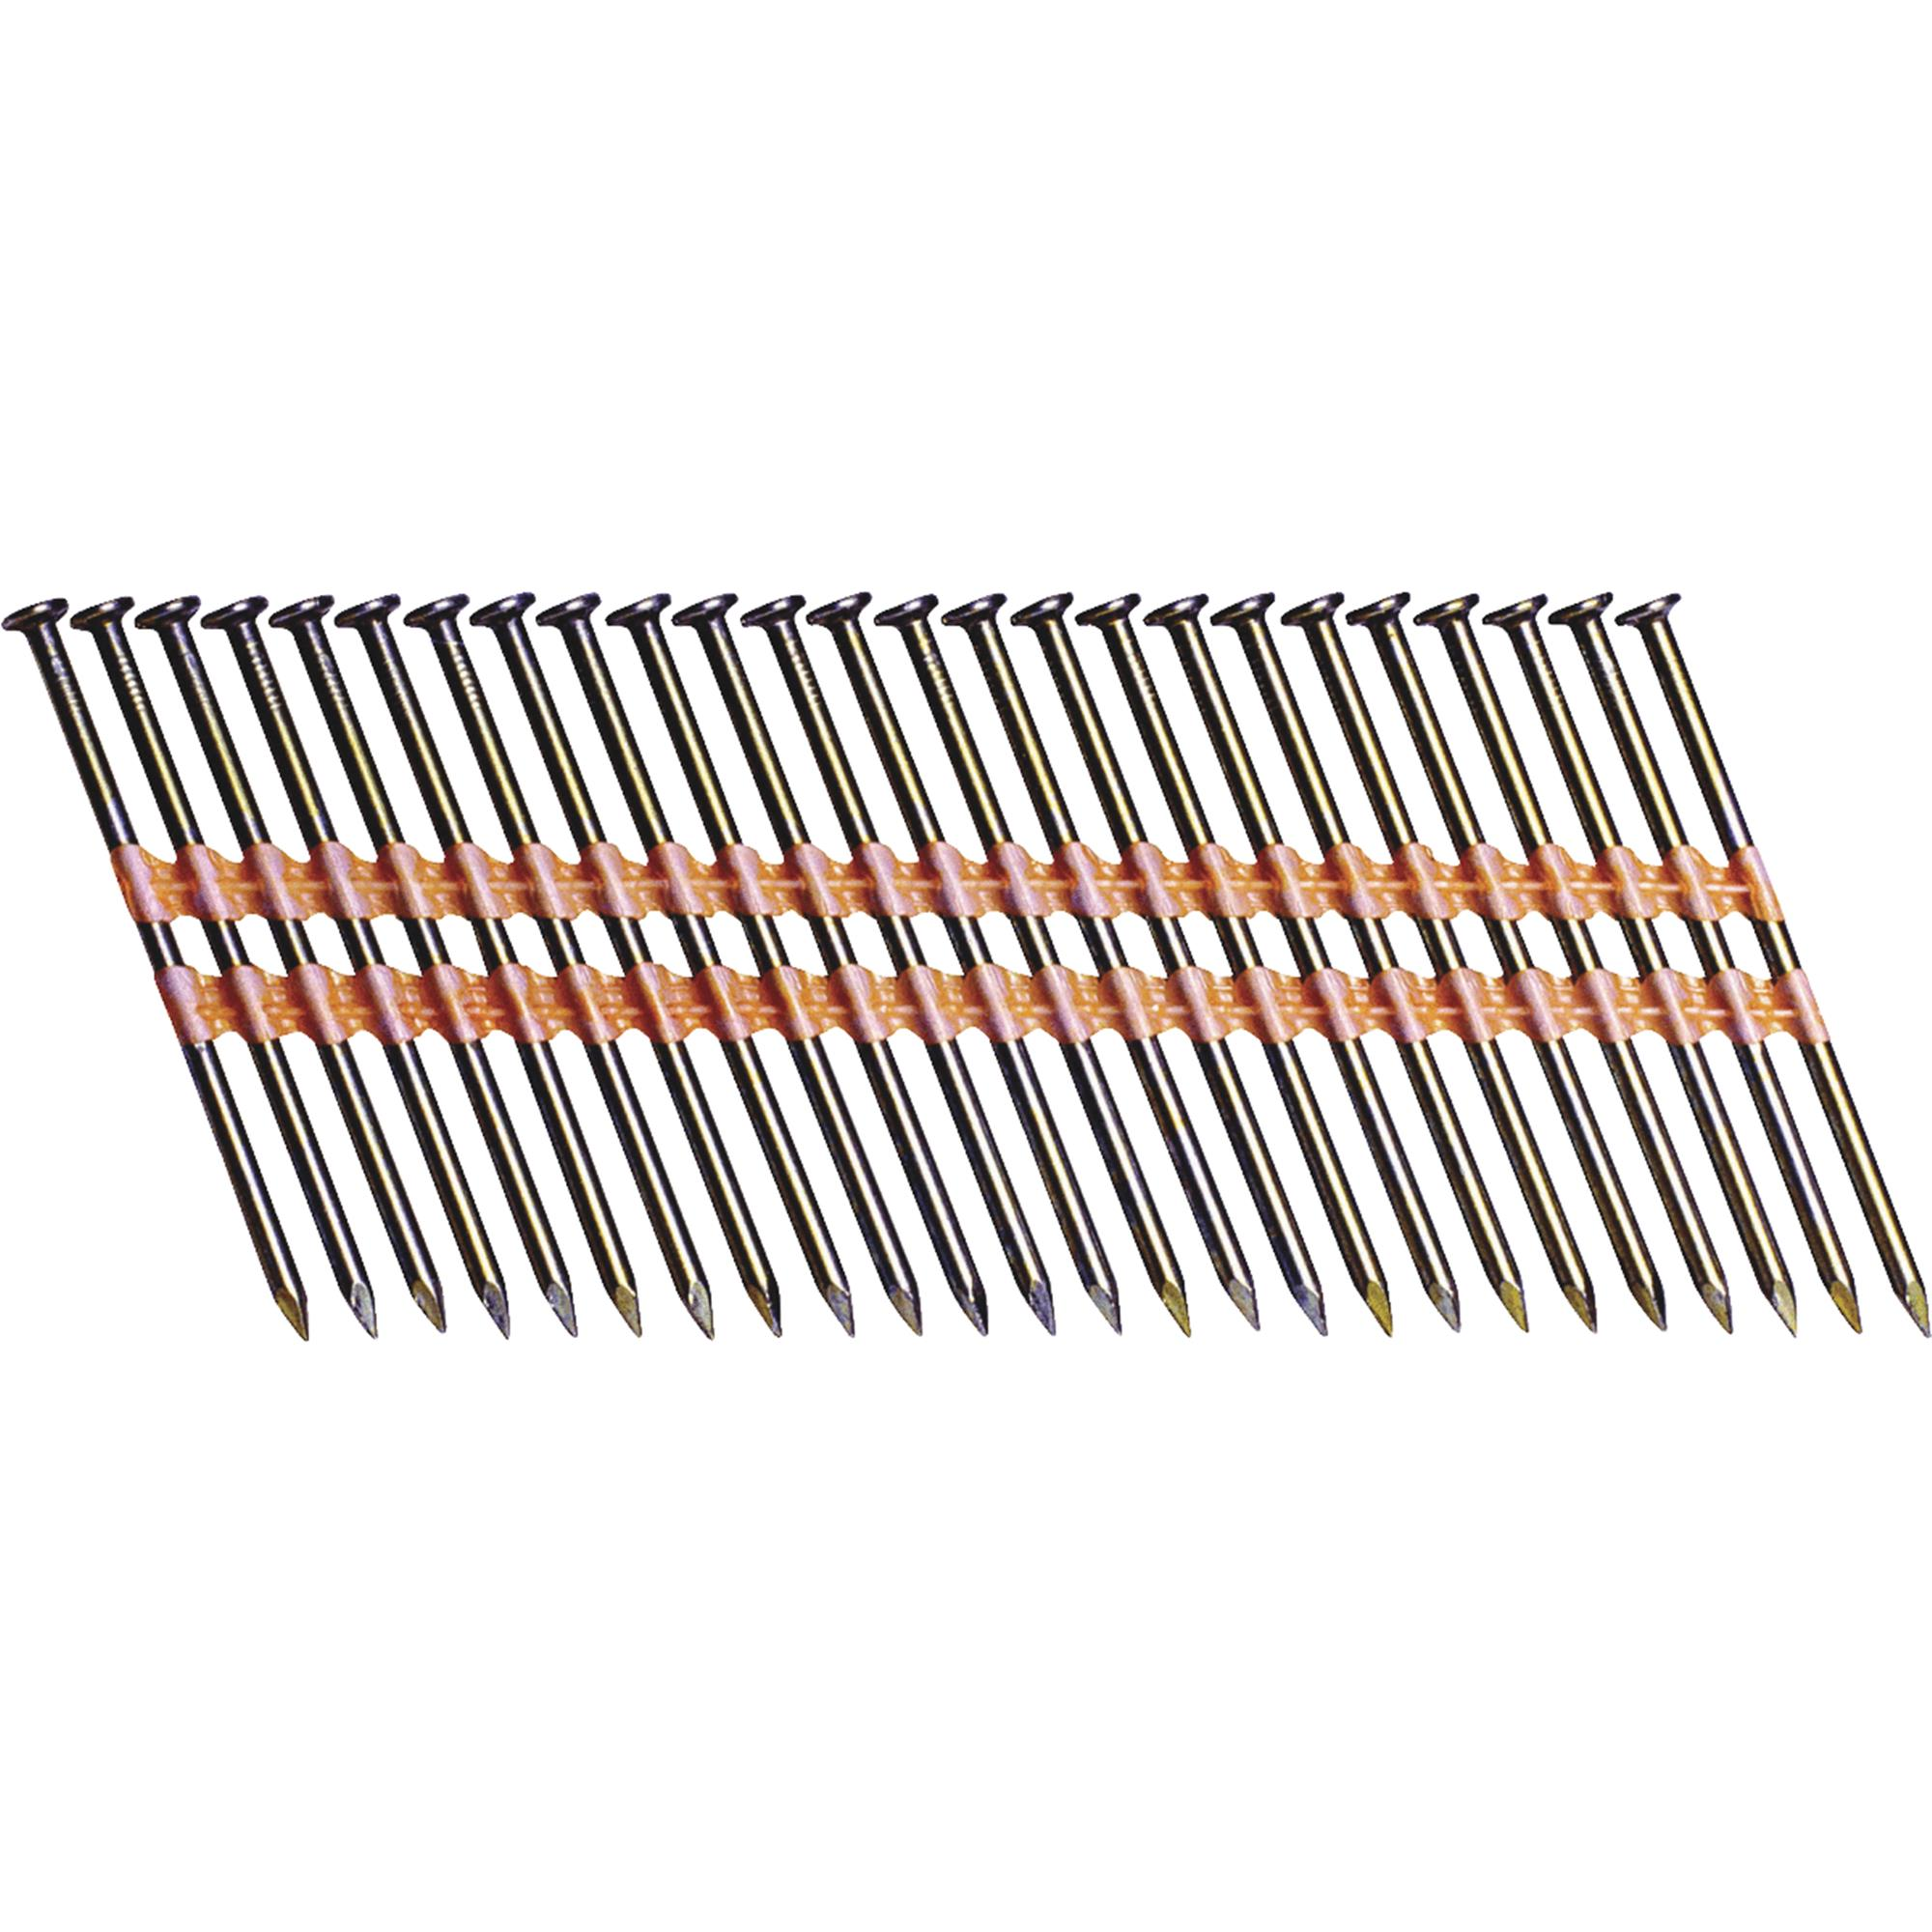 "Grip Rite GR07 2-3/8"" x 0.113"" Vinyl-Coated Steel Bright Smooth Shank Framing Nails, 5,000 Per Box"